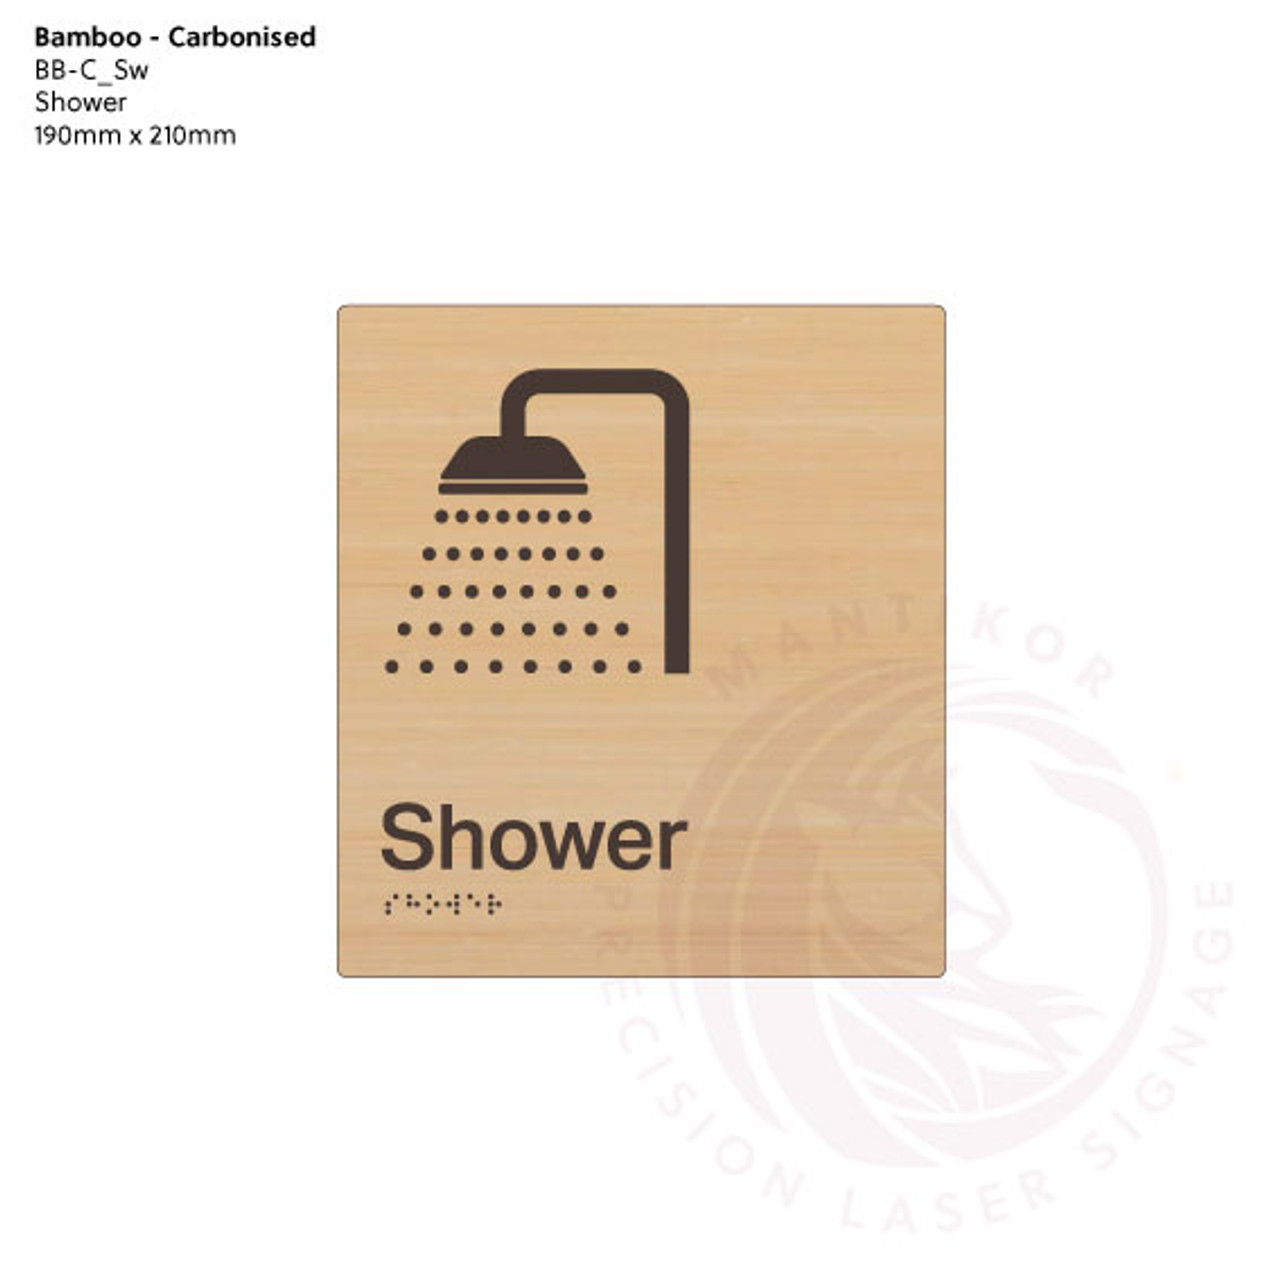 Carbonised Bamboo Tactile Braille Signs - Shower